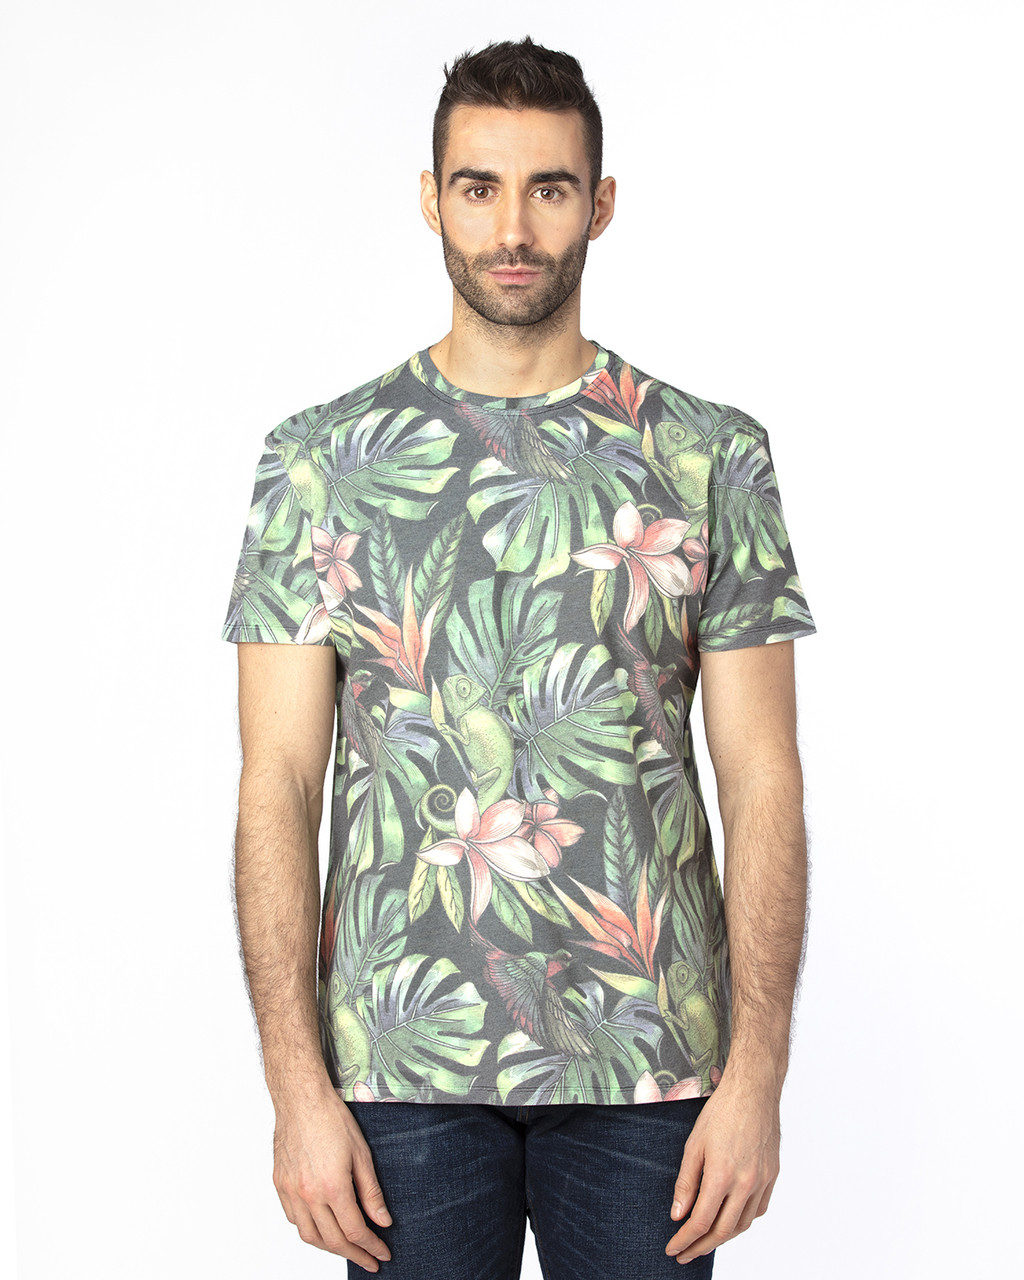 Tropical Jungle - 100A Threadfast Unisex Ultimate Short-Sleeve T-Shirt | BlankClothing.ca